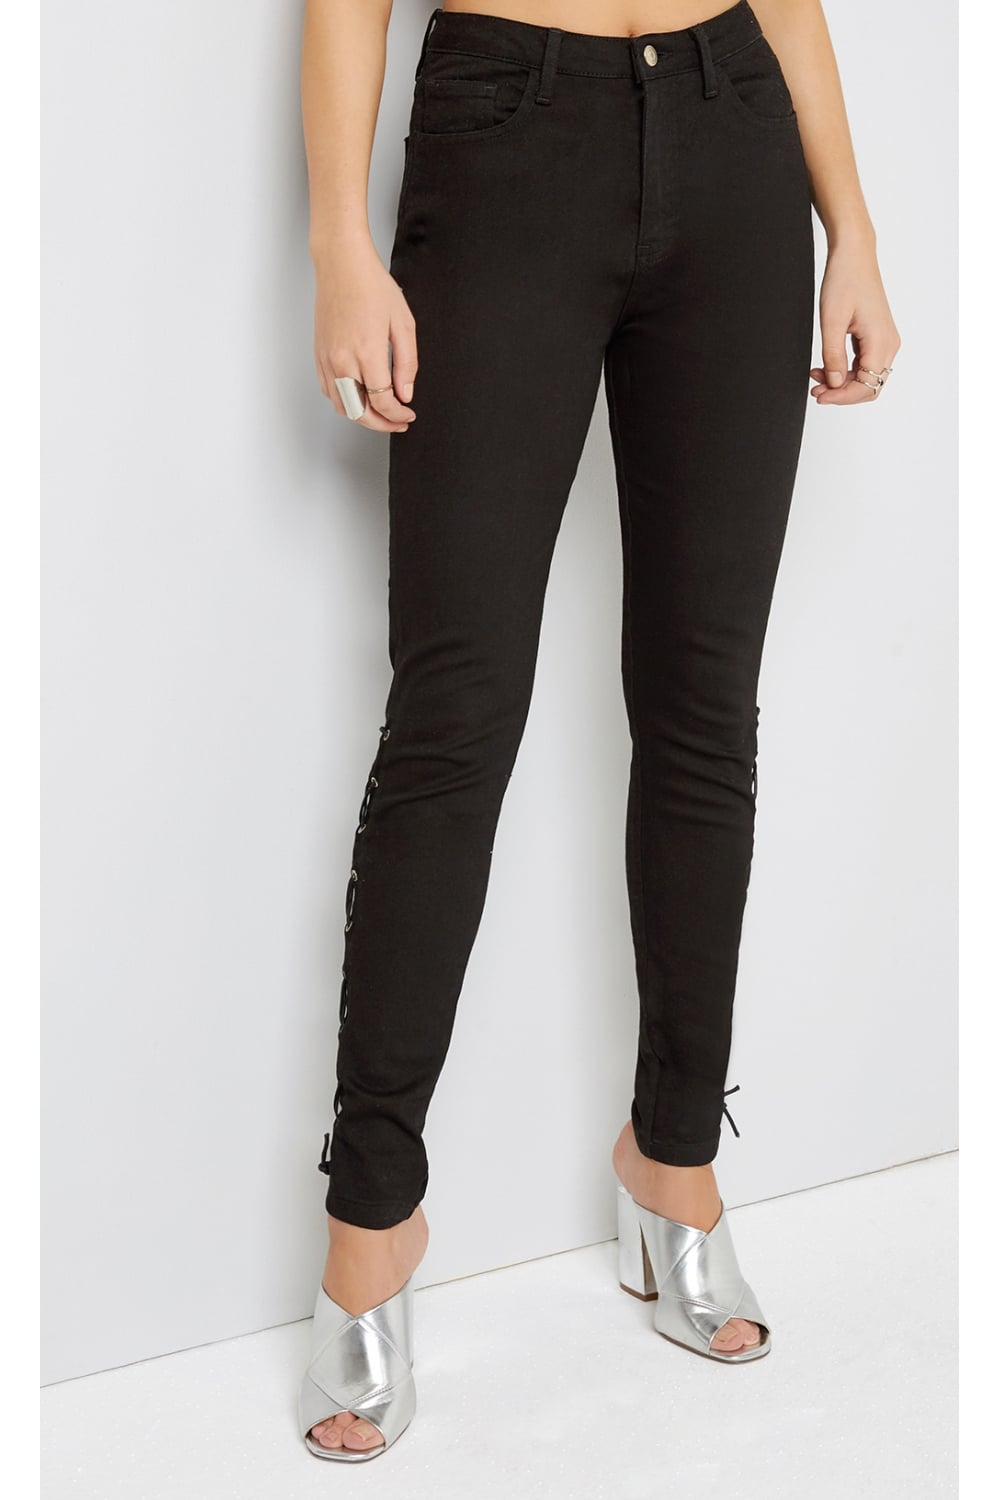 Outlet Girls On Film Girls On Film Black Jeans Outlet